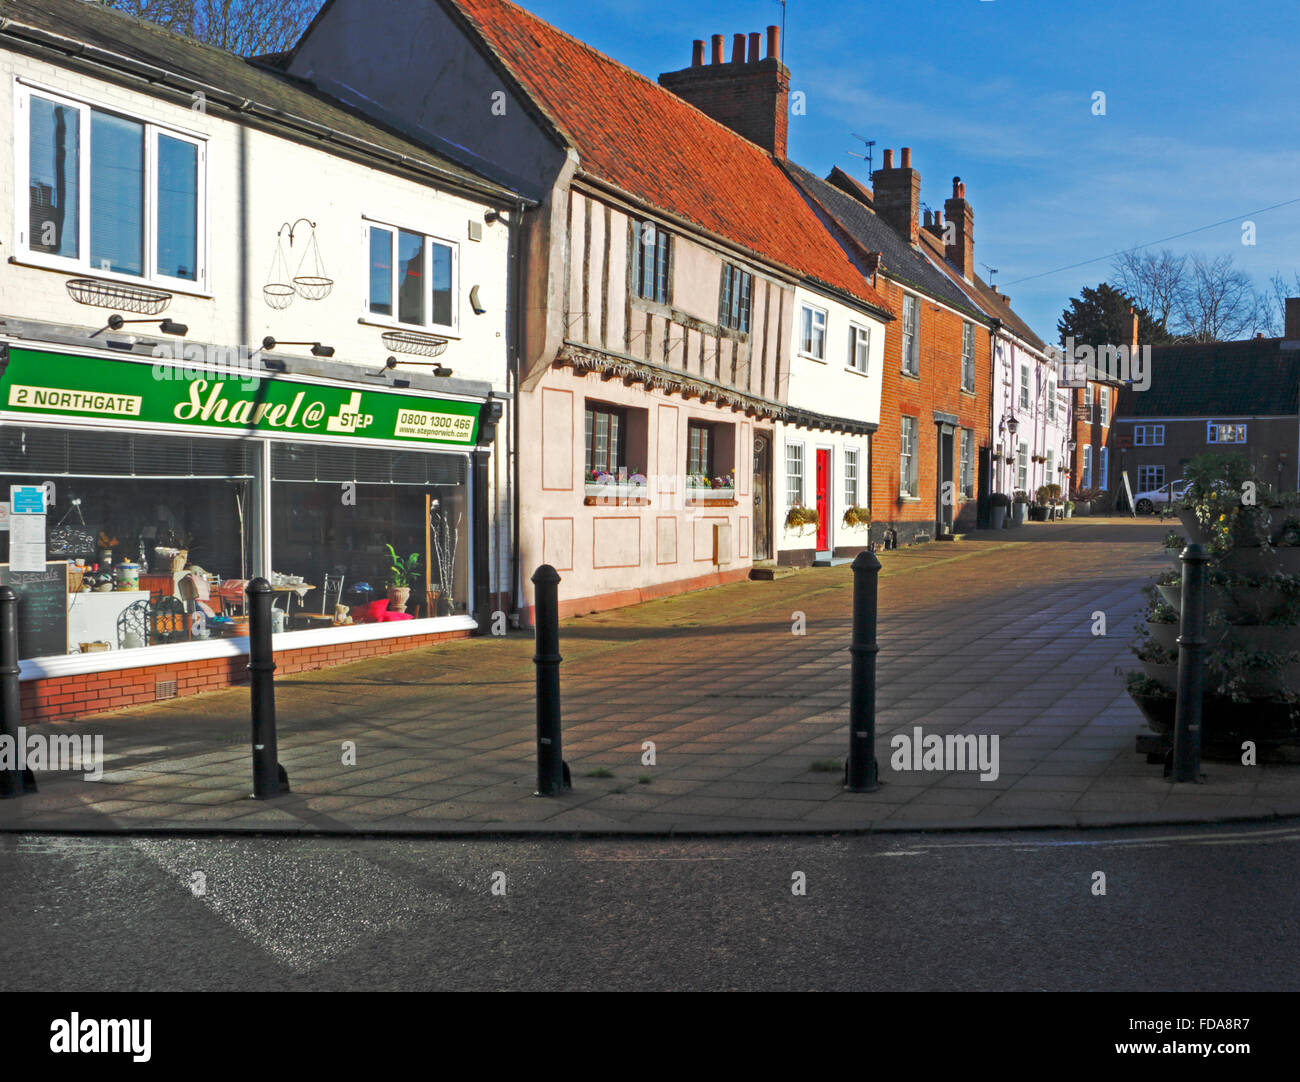 A view of old buildings in the Old Market at Beccles, Suffolk, England, United Kingdom. - Stock Image